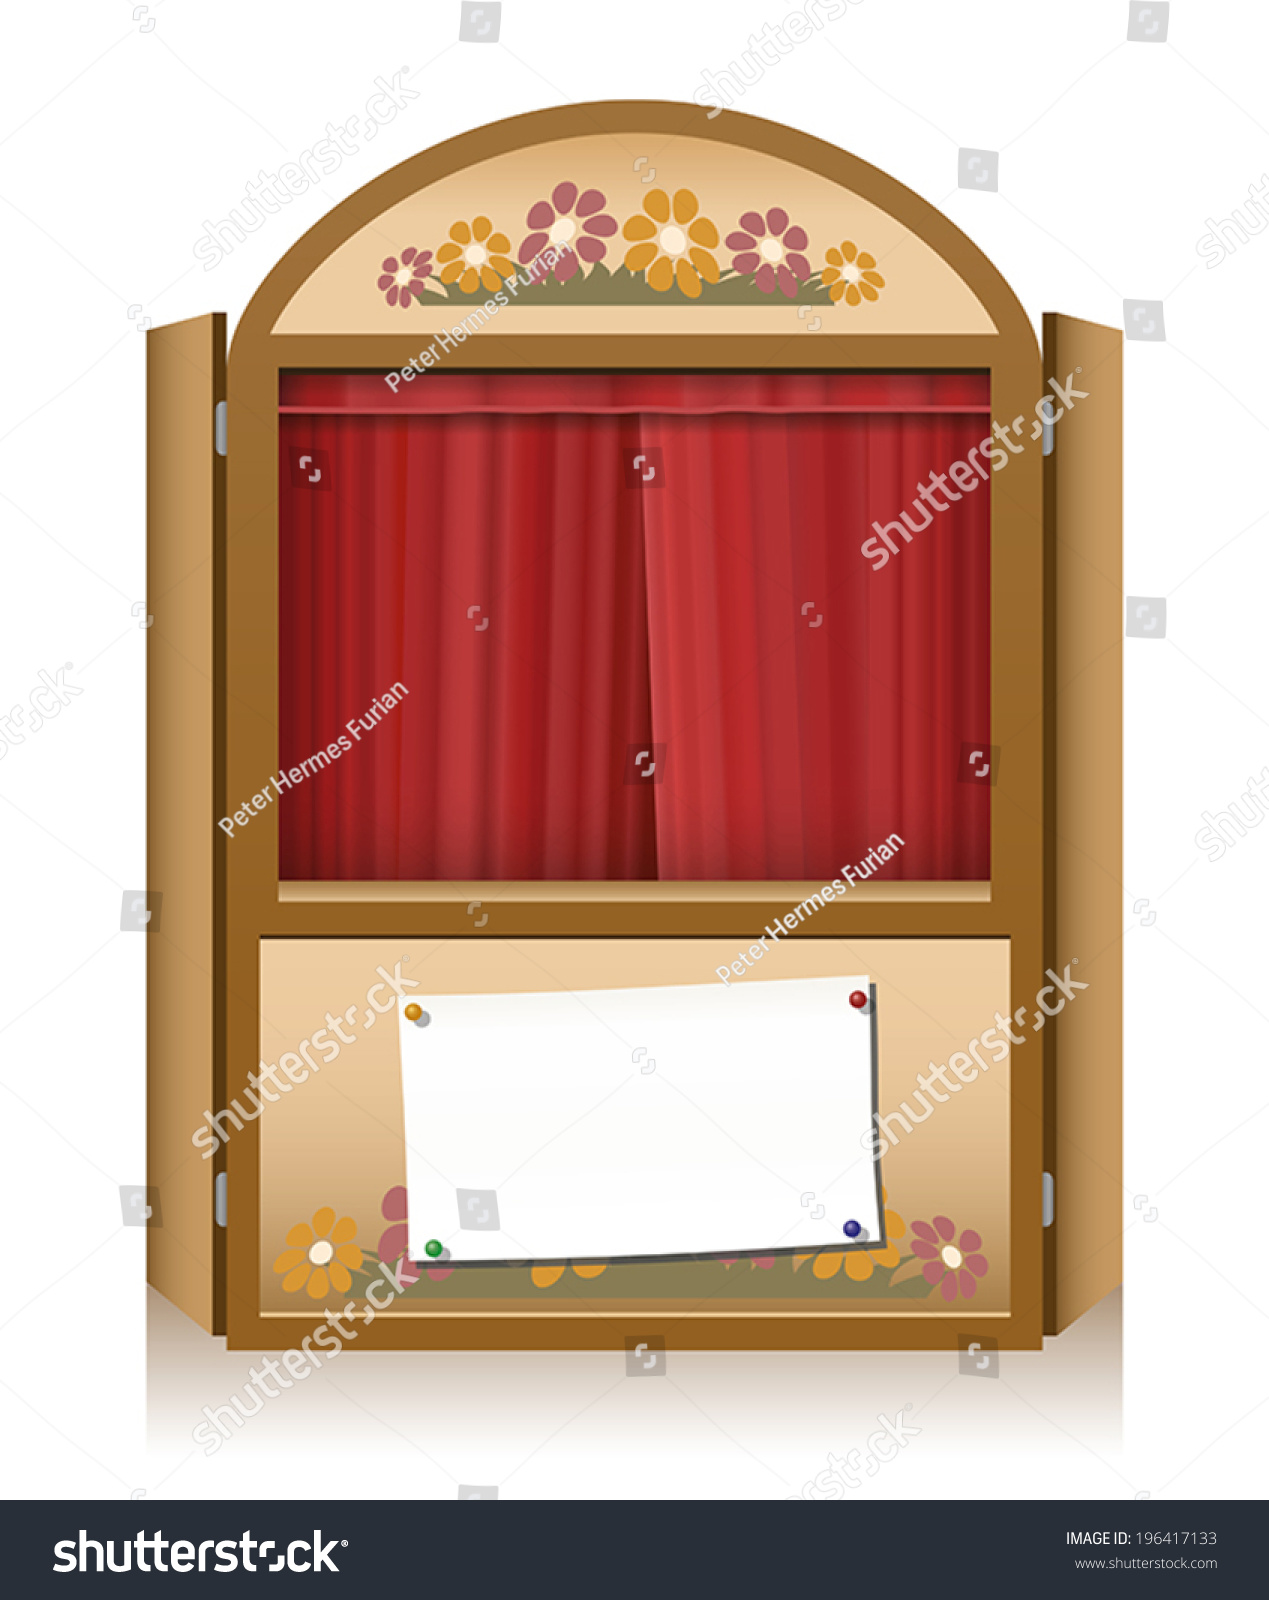 Wooden punch and judy booth with closed red curtain and a blank staging announcement banner  sc 1 st  Shutterstock & Wooden Punch Judy Booth Closed Red Stock Vector 196417133 ...